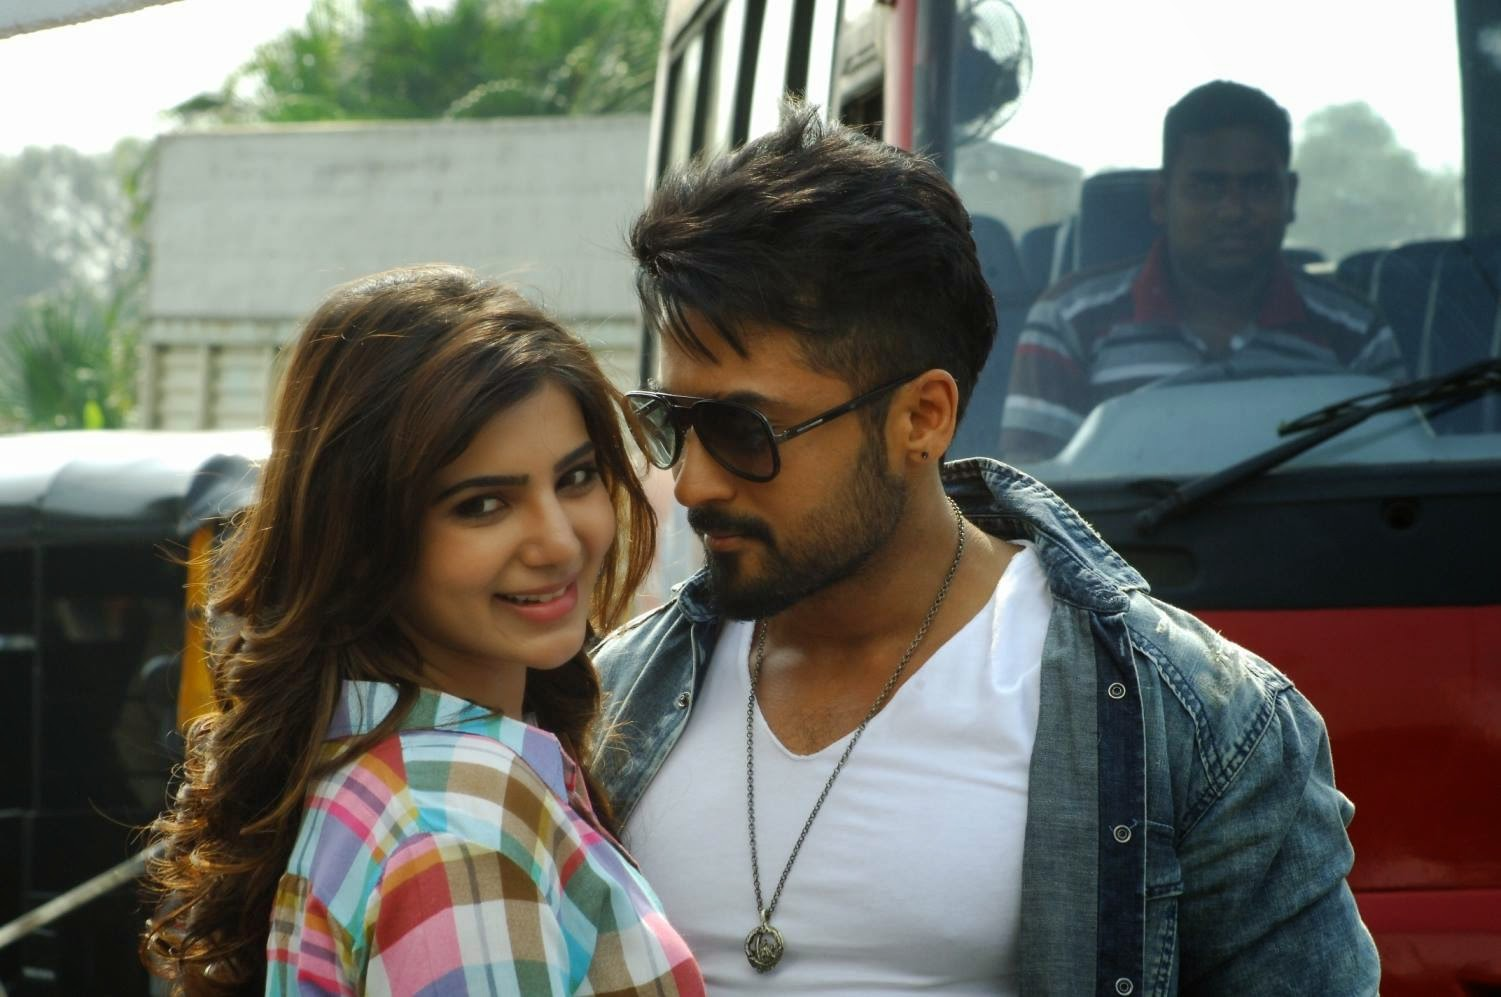 Anjaan 2014 movie firstlook images photos gallery in hd actor anjaan 2014 movie firstlook images photos gallery in hd actor surya masss movie first look trailers teaser songs posters stills altavistaventures Gallery